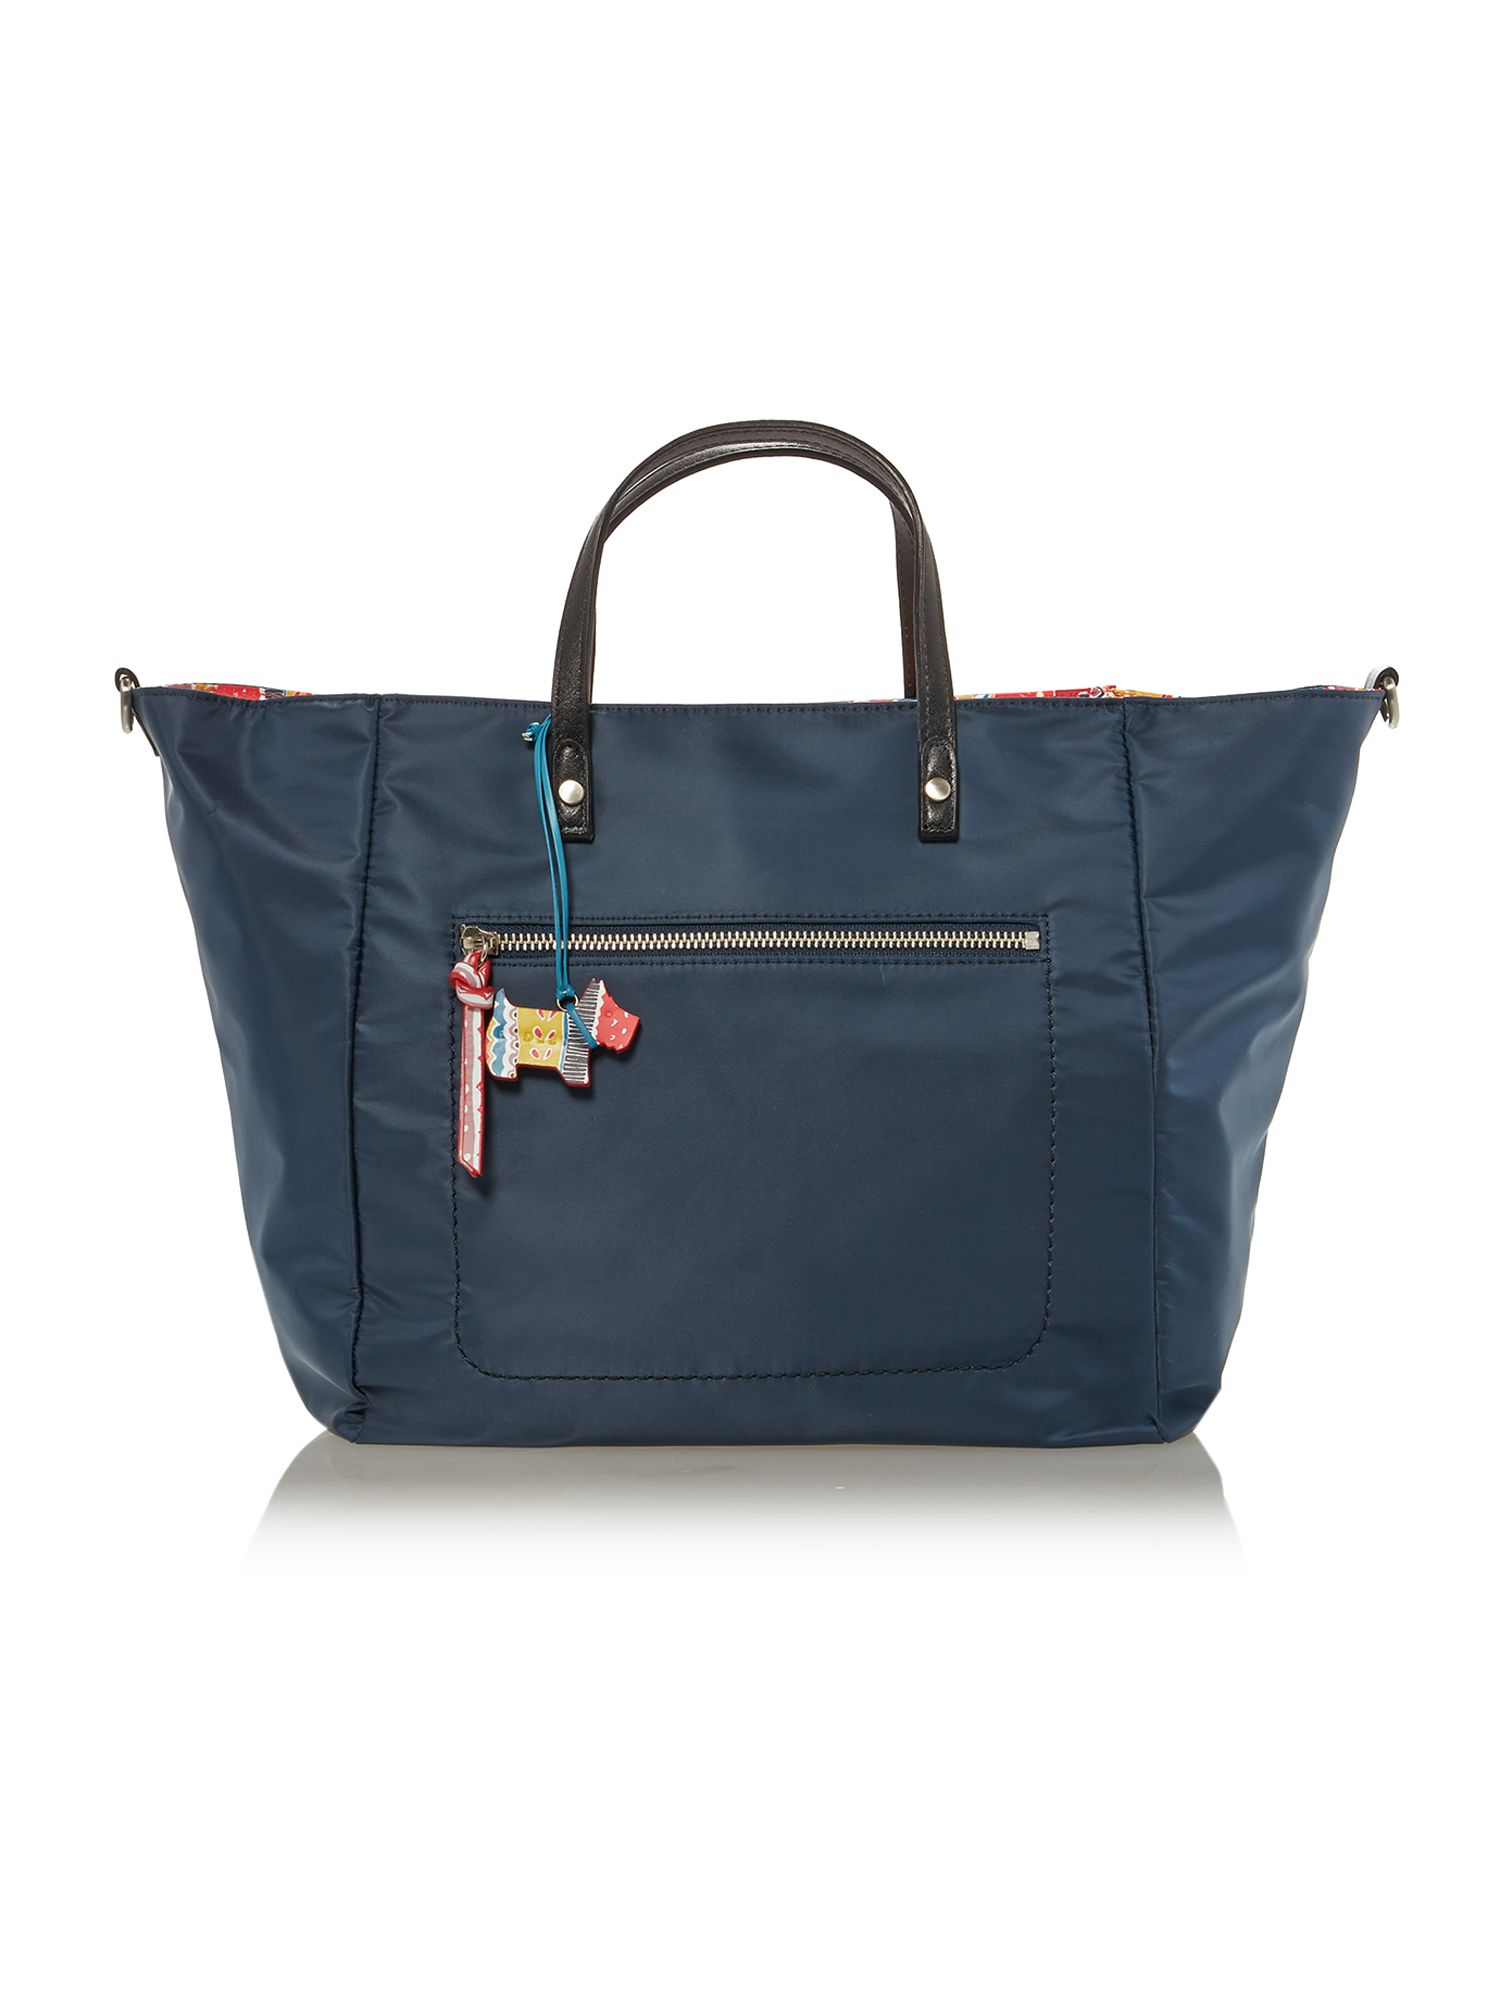 Petticoat navy medium xbody tote leather bag